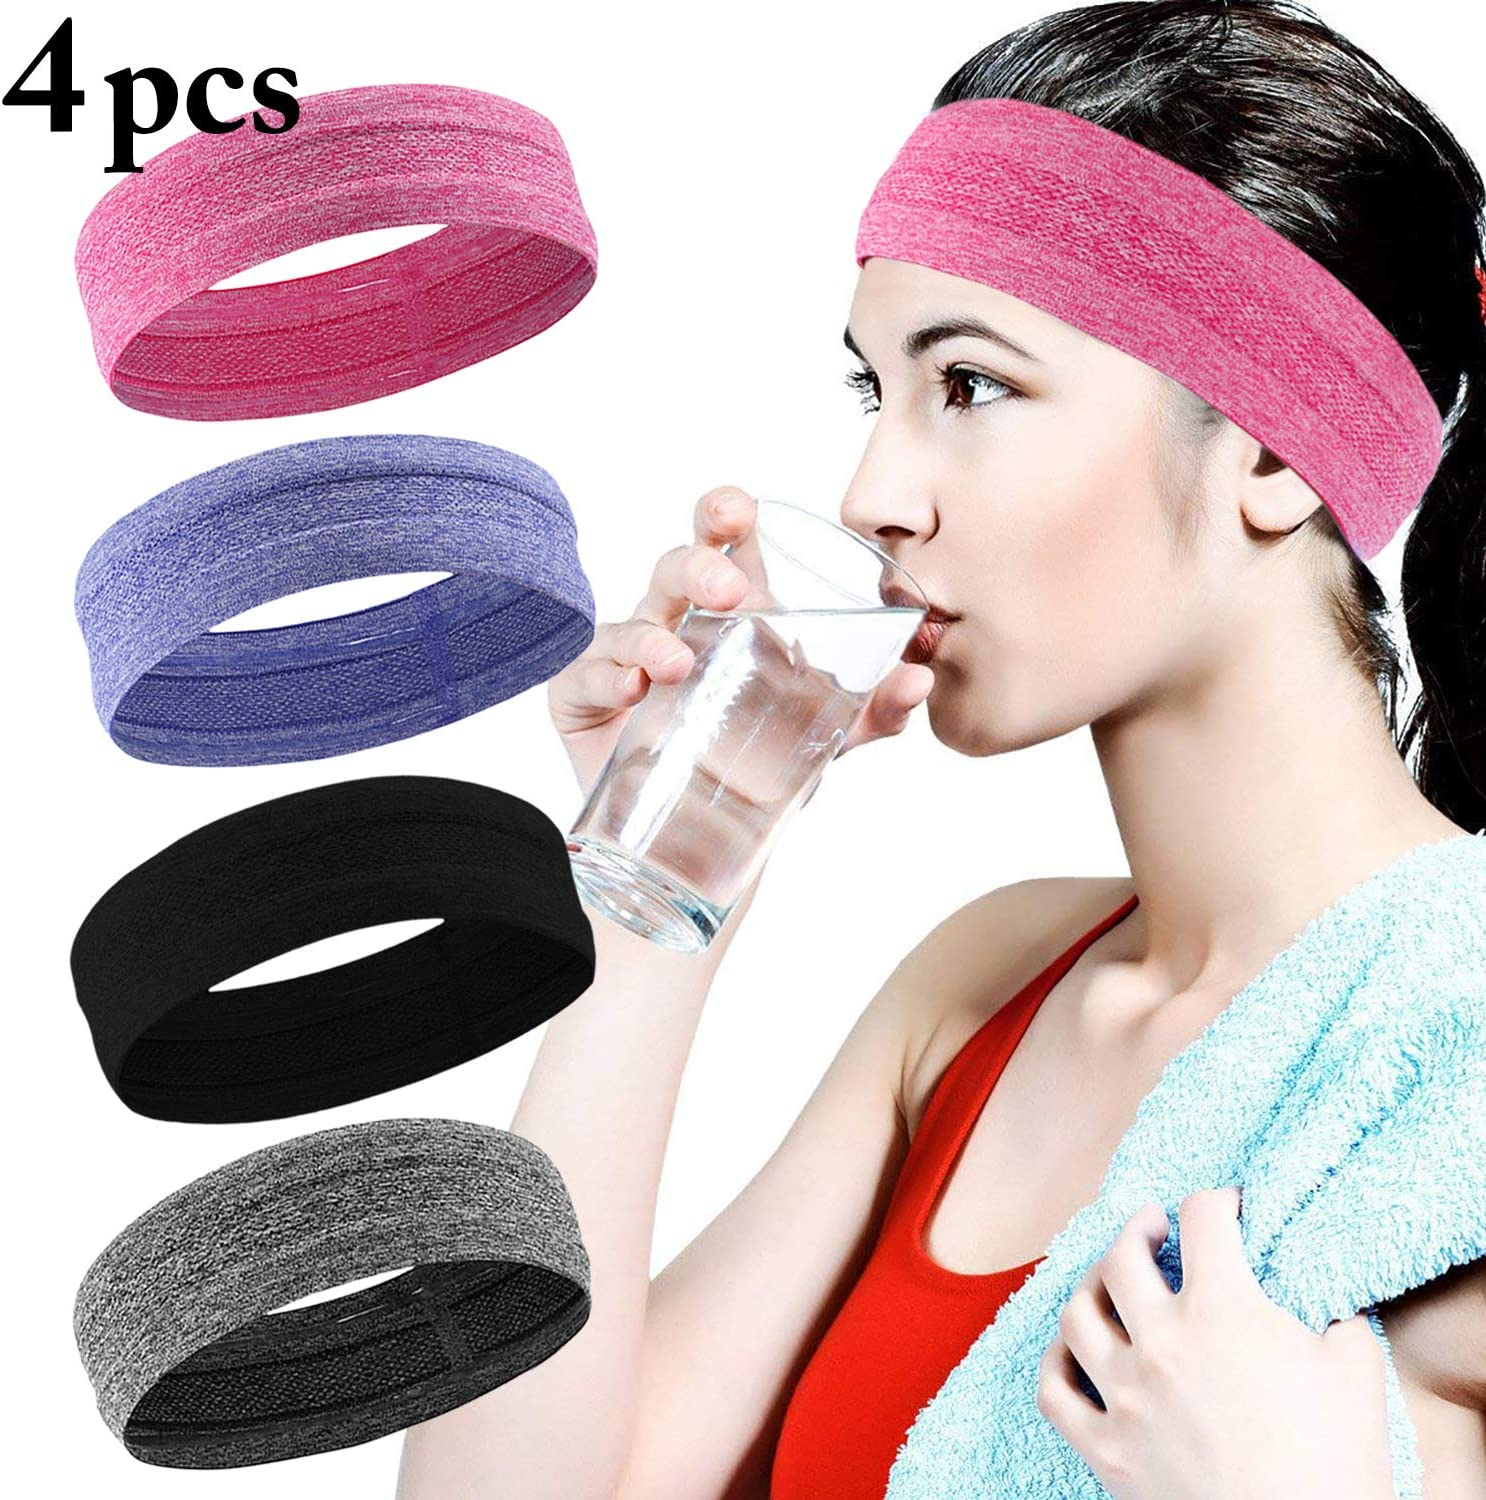 Fascigirl Sport Headband Sweatband For Women Men Elastic Head Band